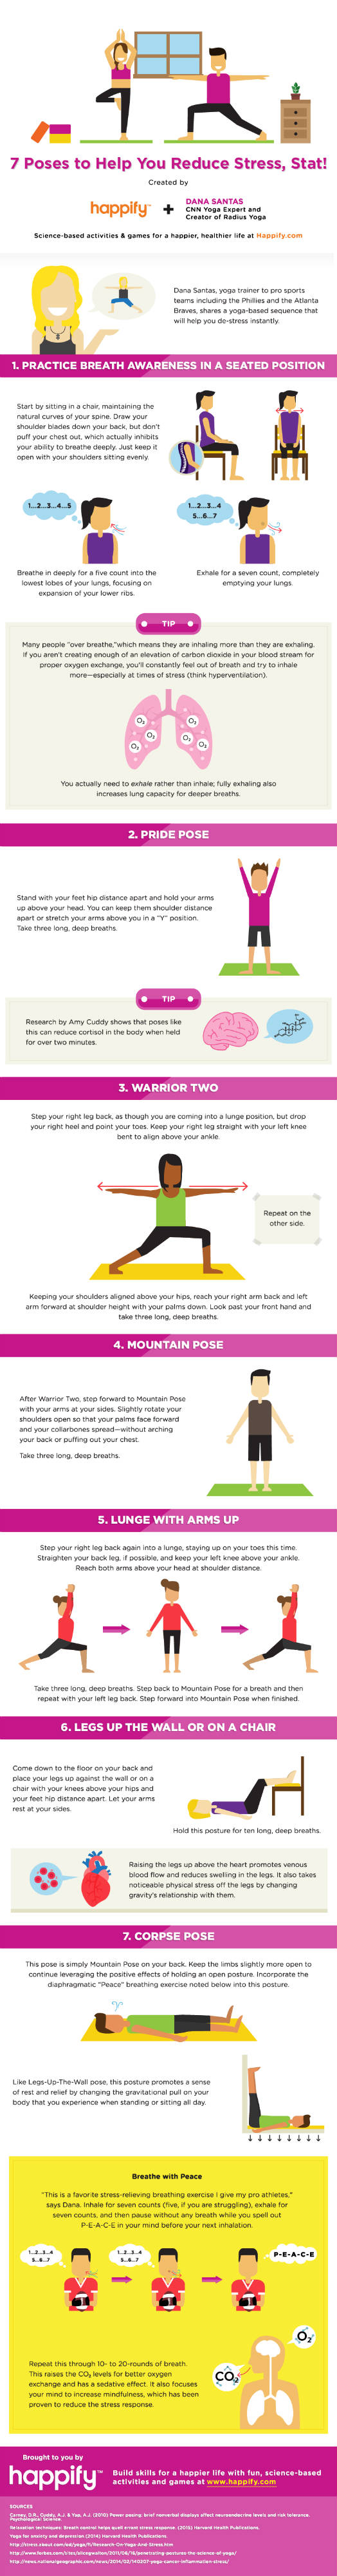 7 breathing exercises and yoga poses to help you reduce stress and anxiety infographic. Black Bedroom Furniture Sets. Home Design Ideas